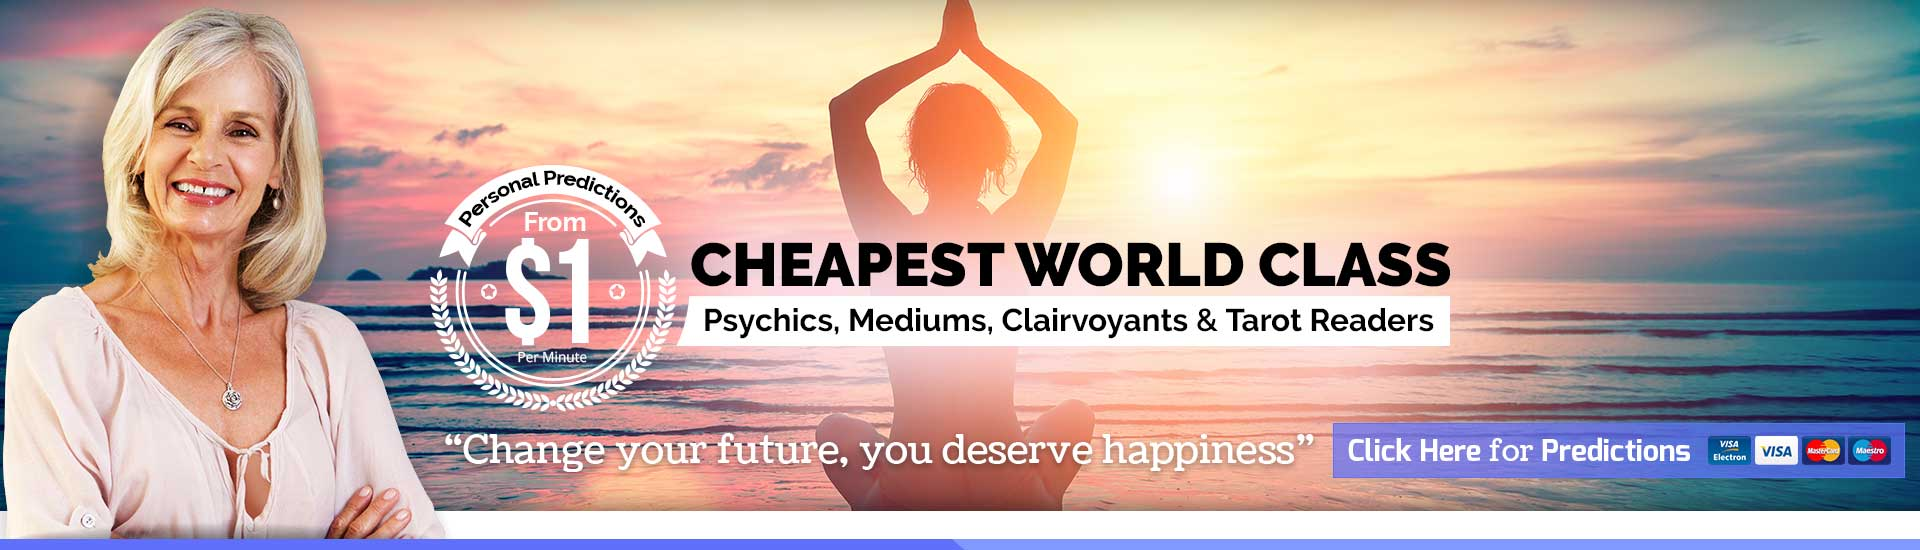 Trusted Psychic Readings